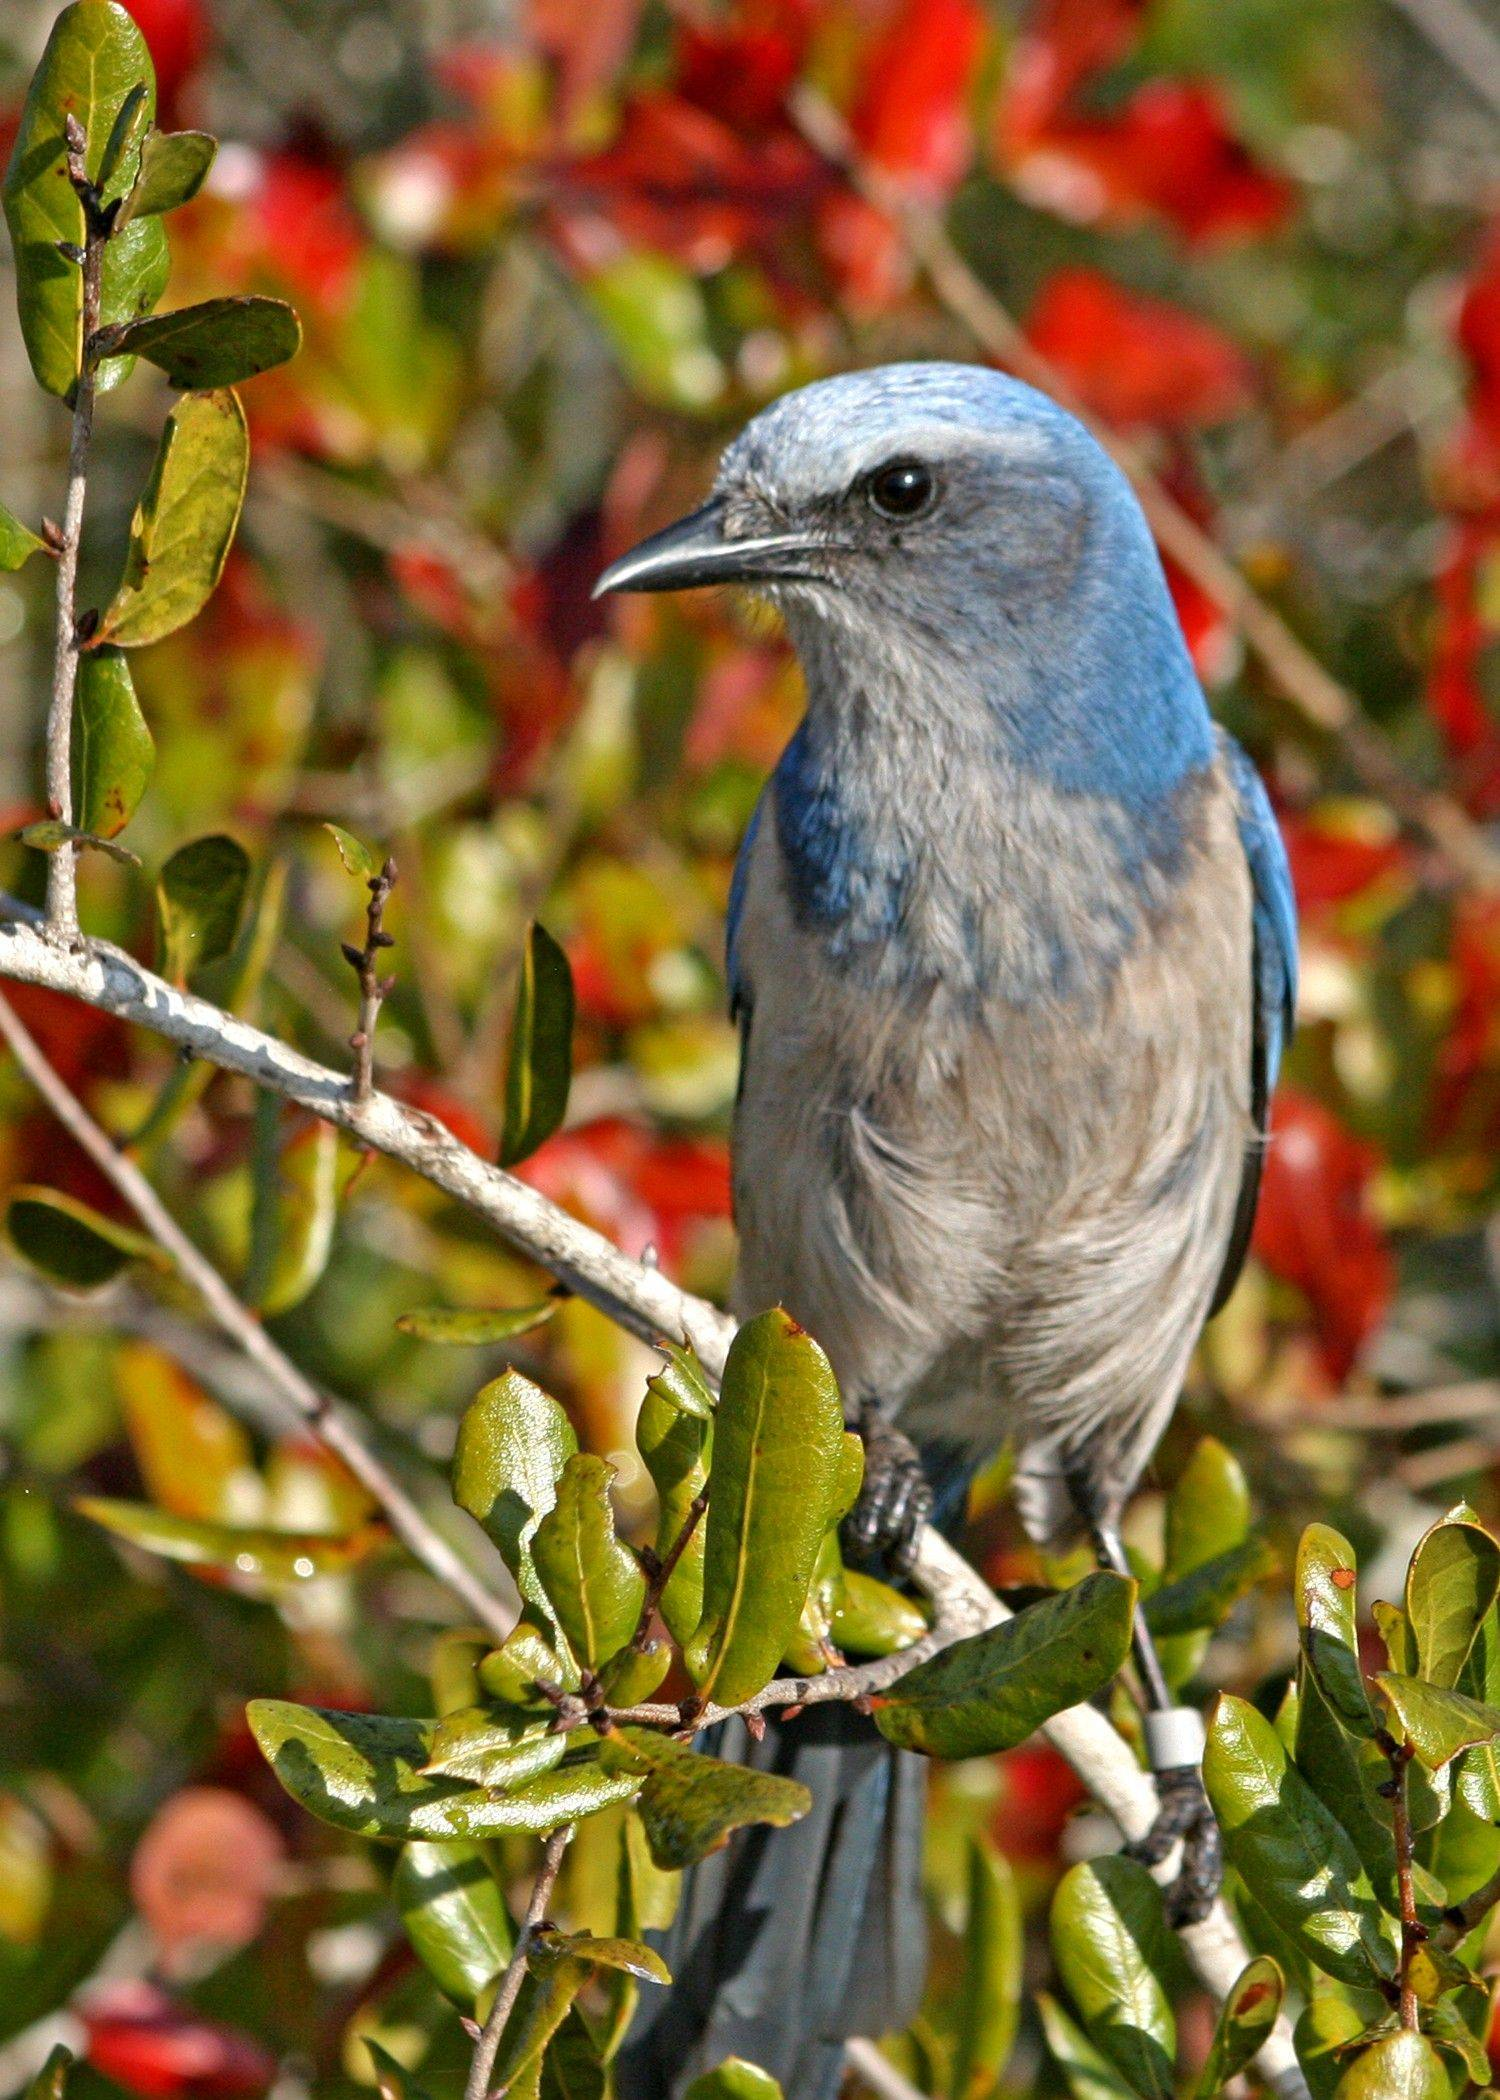 Florida scrub-jay is the Sunshine State's only endemic species. The decline in scrub habitat threatens its survival.